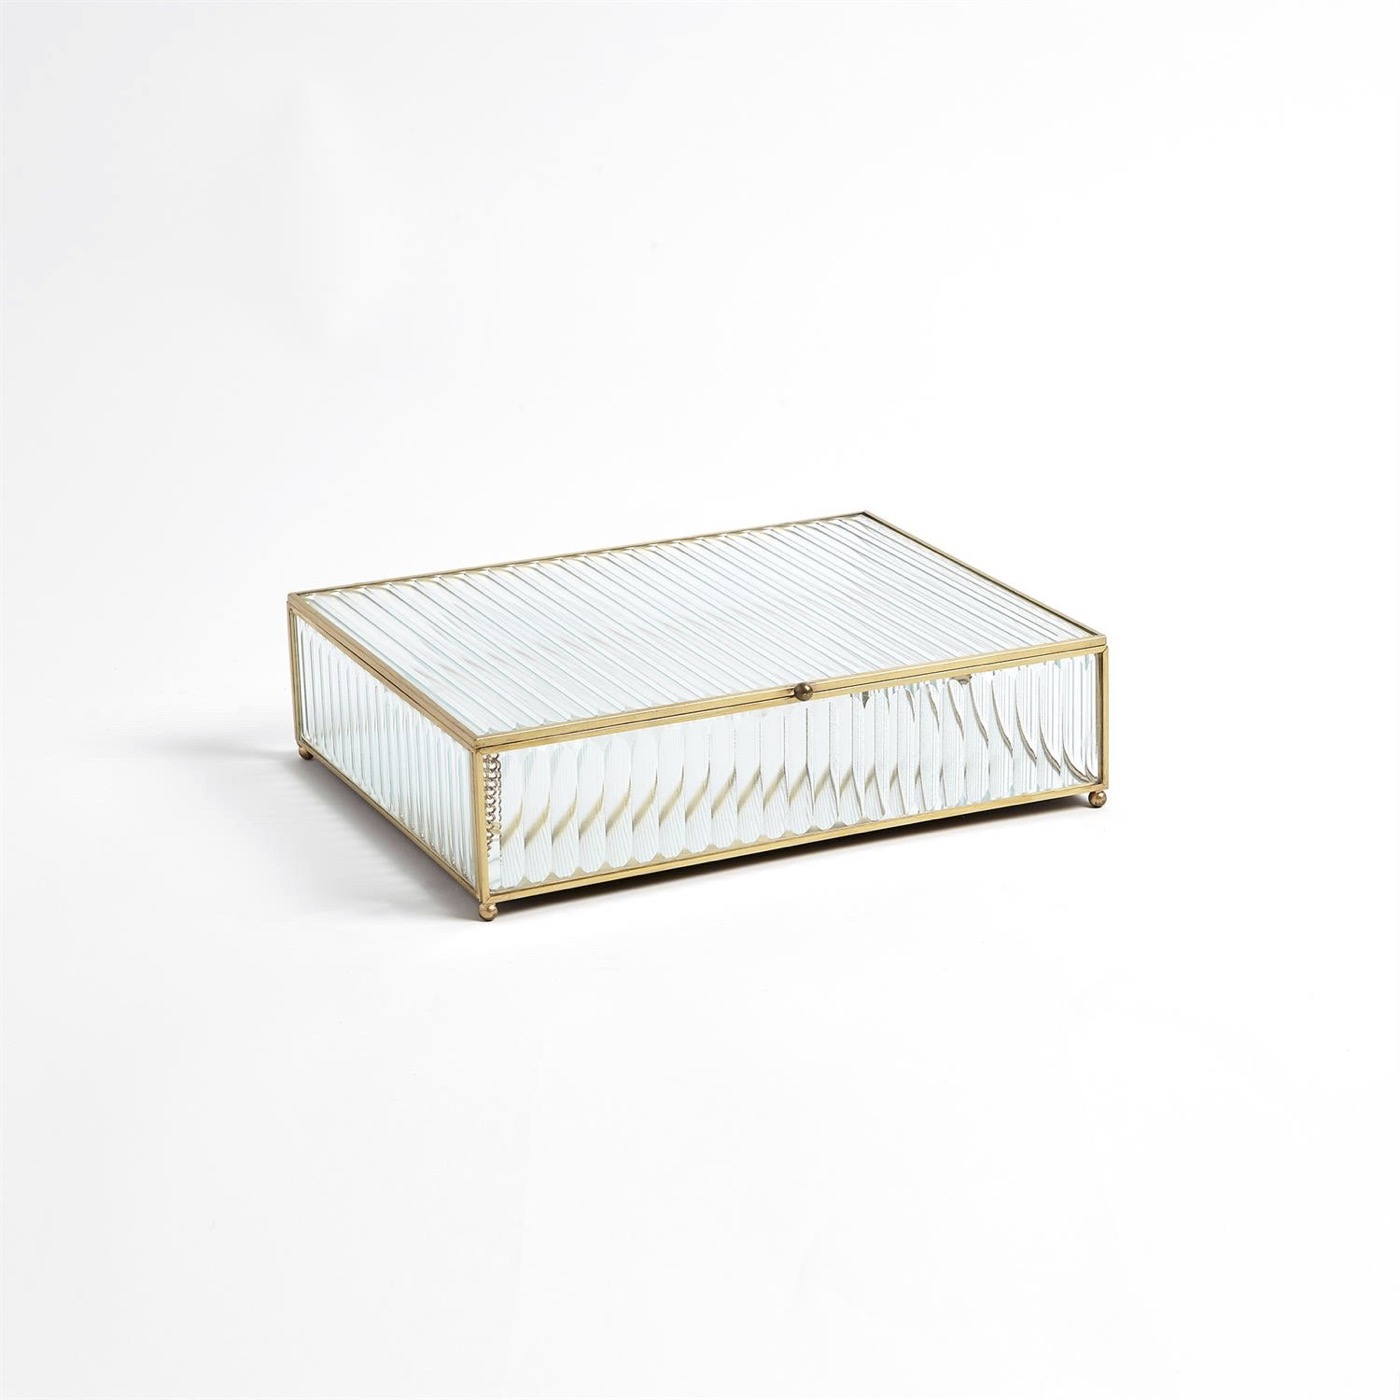 Gable Ribbed Glass Boxes